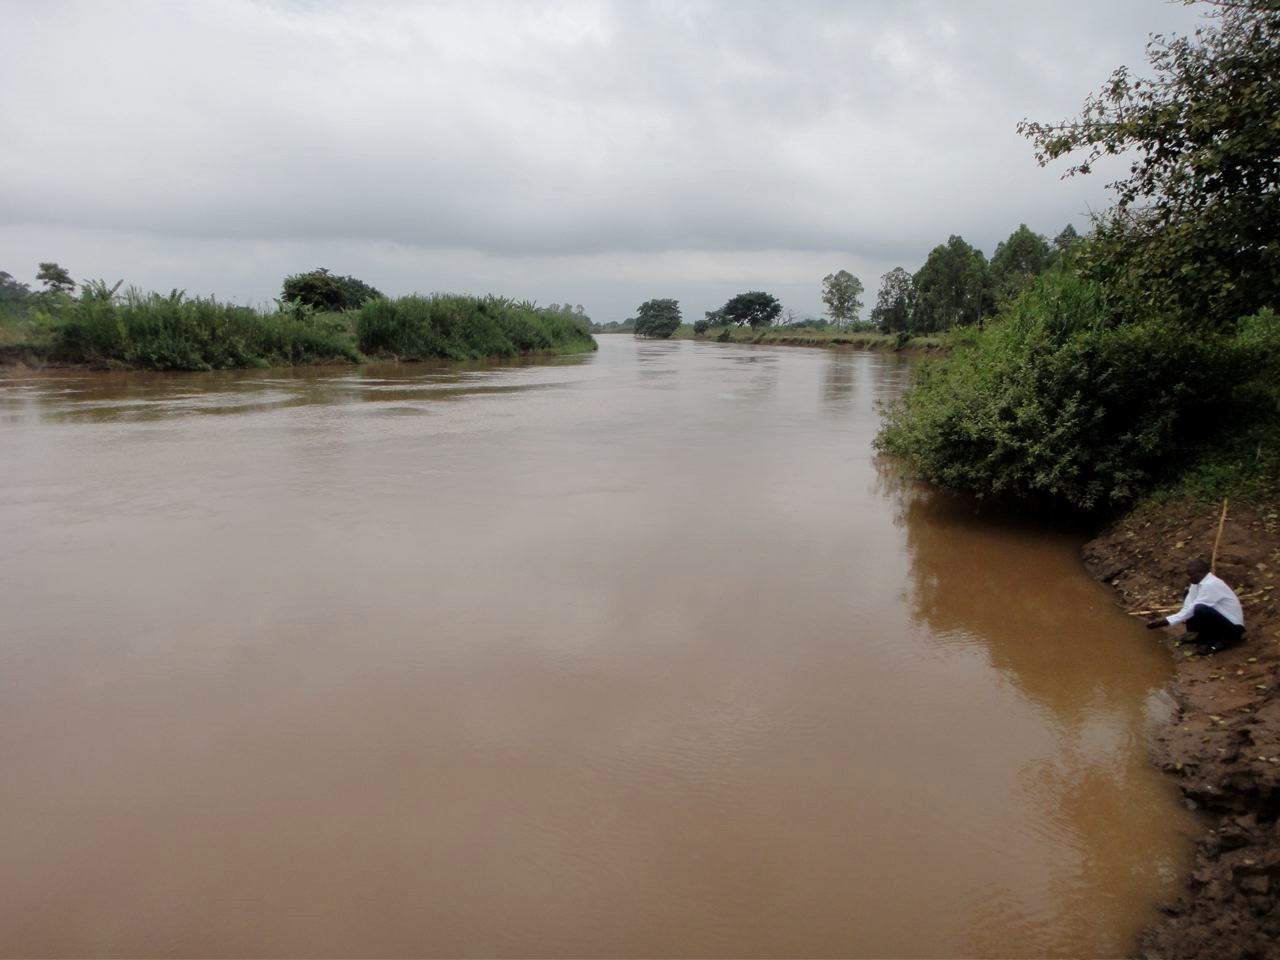 River Nzoia, one of LVSCA major rivers, passing through Budalangi Area (Picture by Mike Thibert)